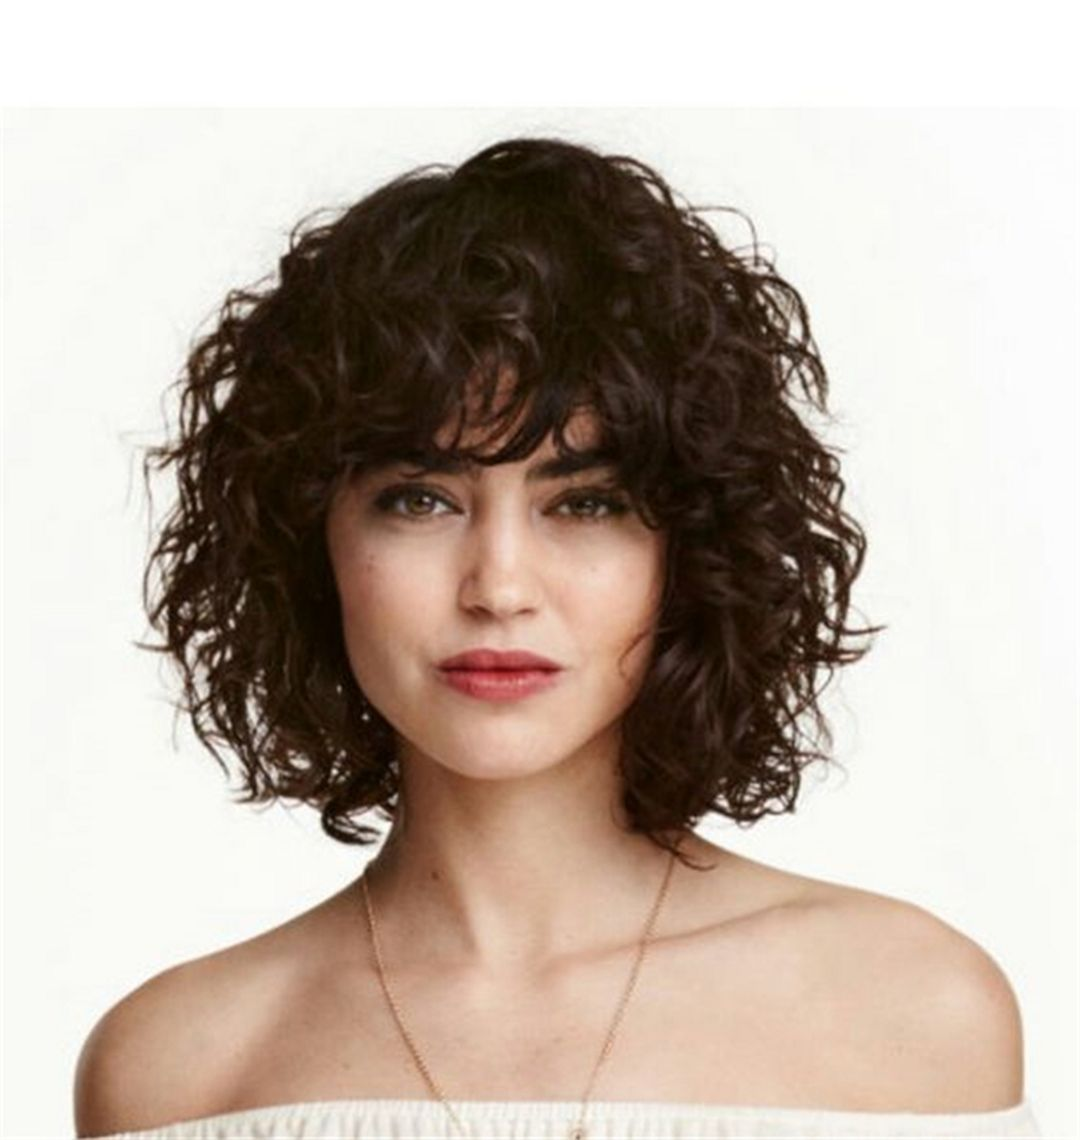 15 Chic Curly Hairstyles To Make You Look More Charming - #15 #Charming #chic #Curly #Hairstyles #Look #Make #more #to #You